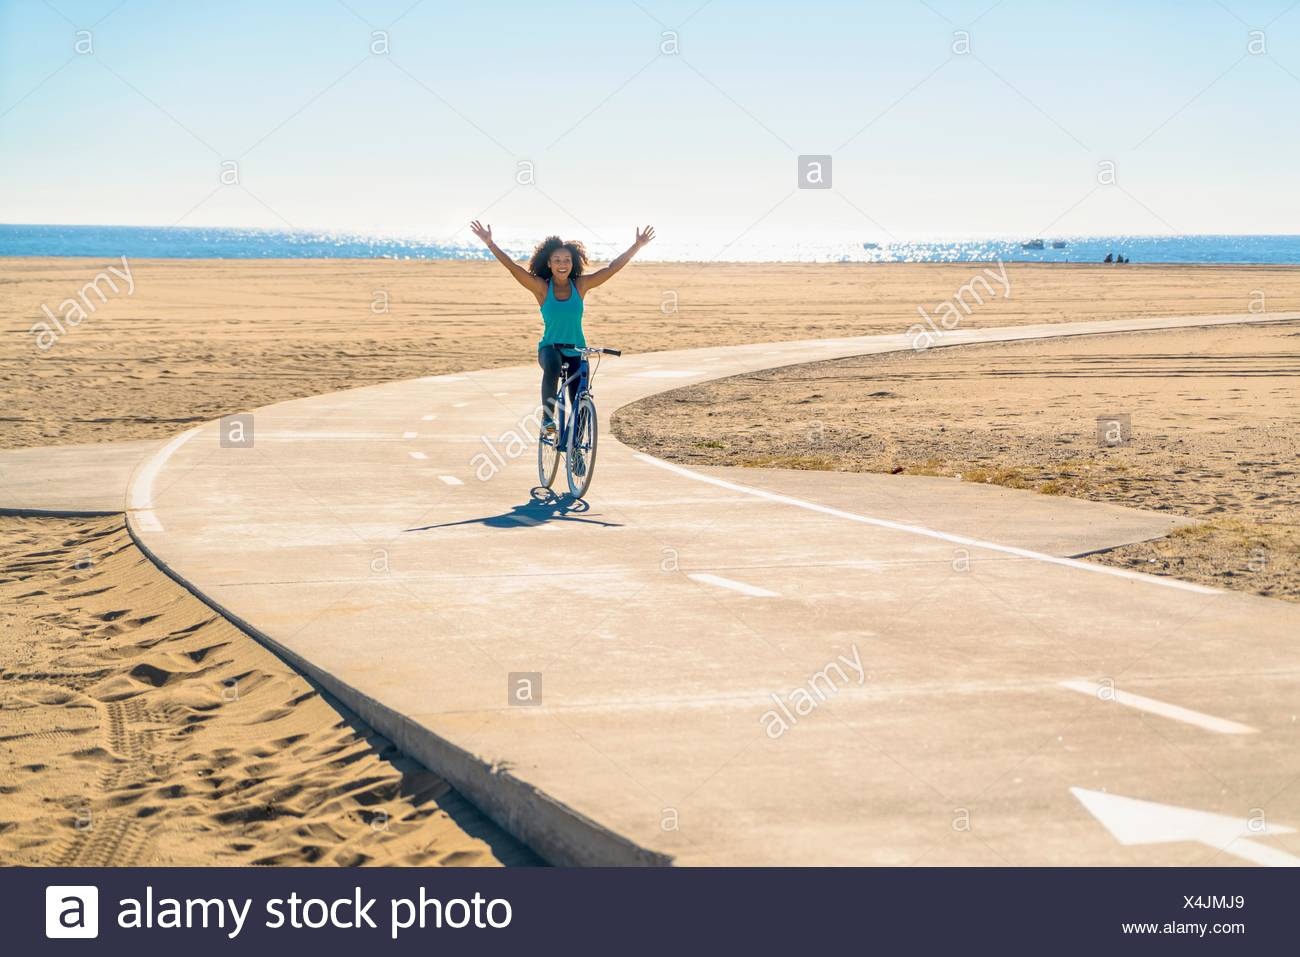 Mid adult woman cycling along pathway at beach, arms in air - Stock Image